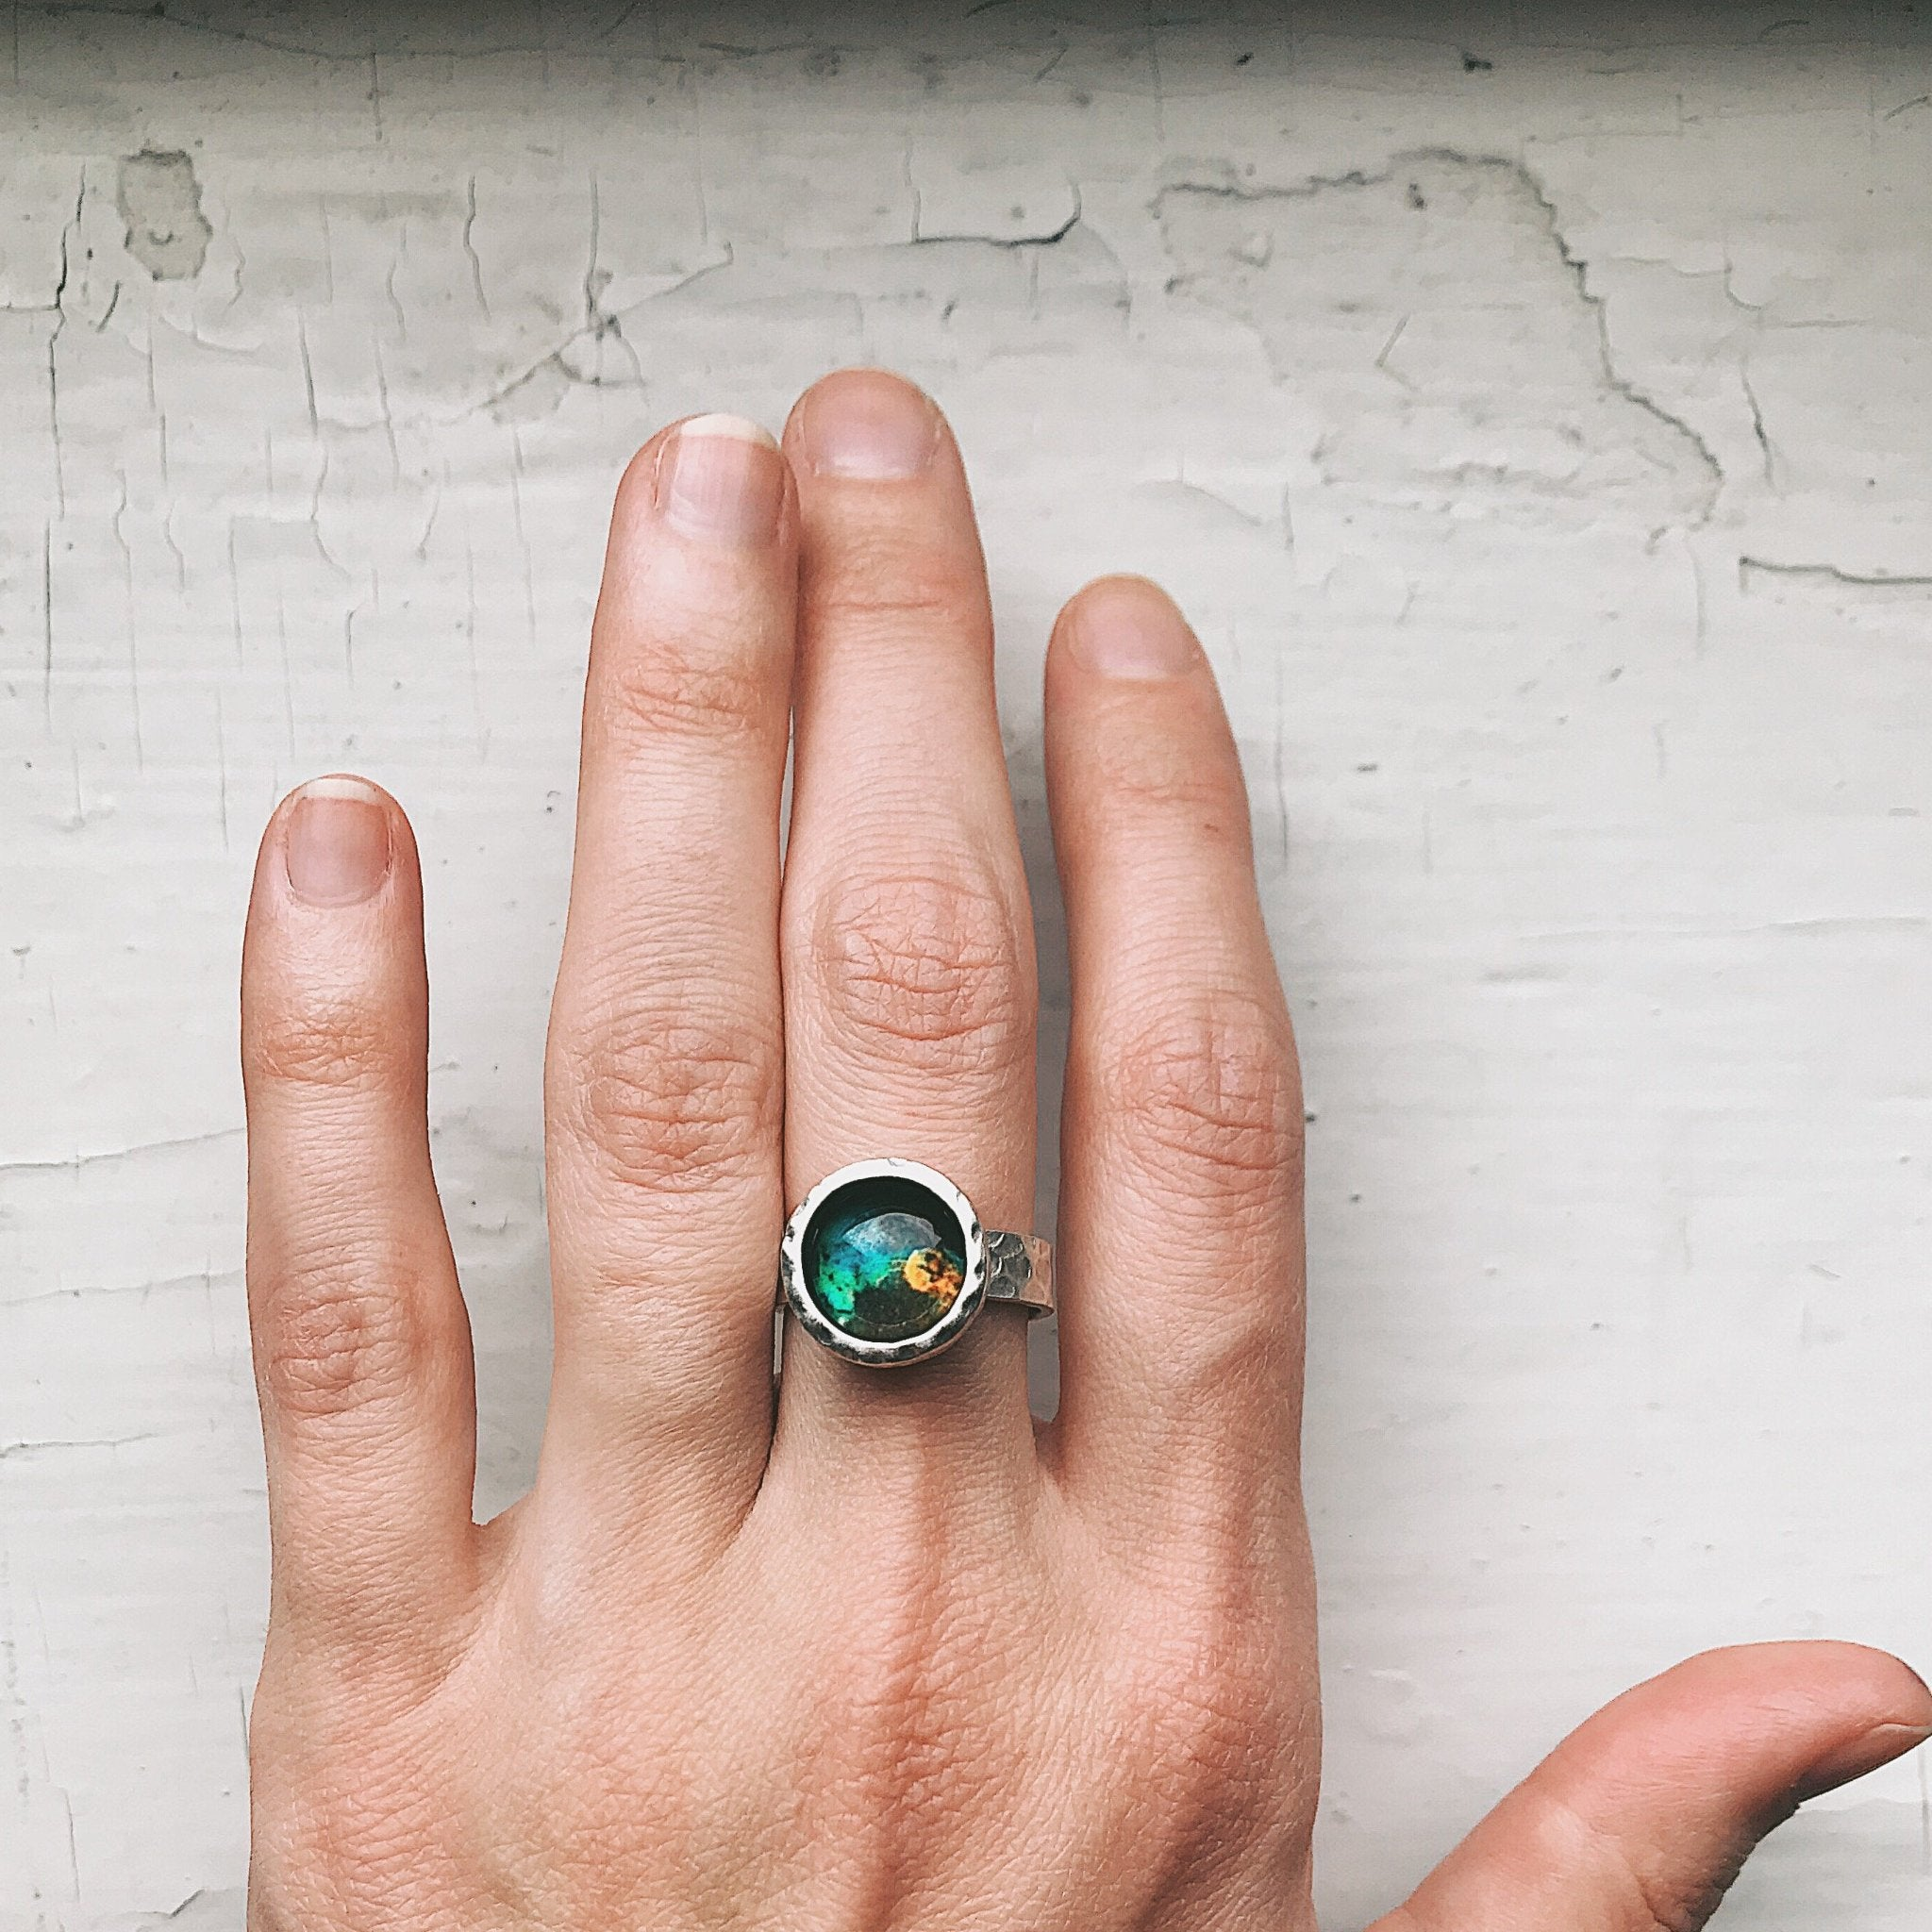 Hammered silver ring with outer space image - choose your planet, nebula, moon, sun, galaxy - STEM fashion handmade jewelry by Yugen Tribe